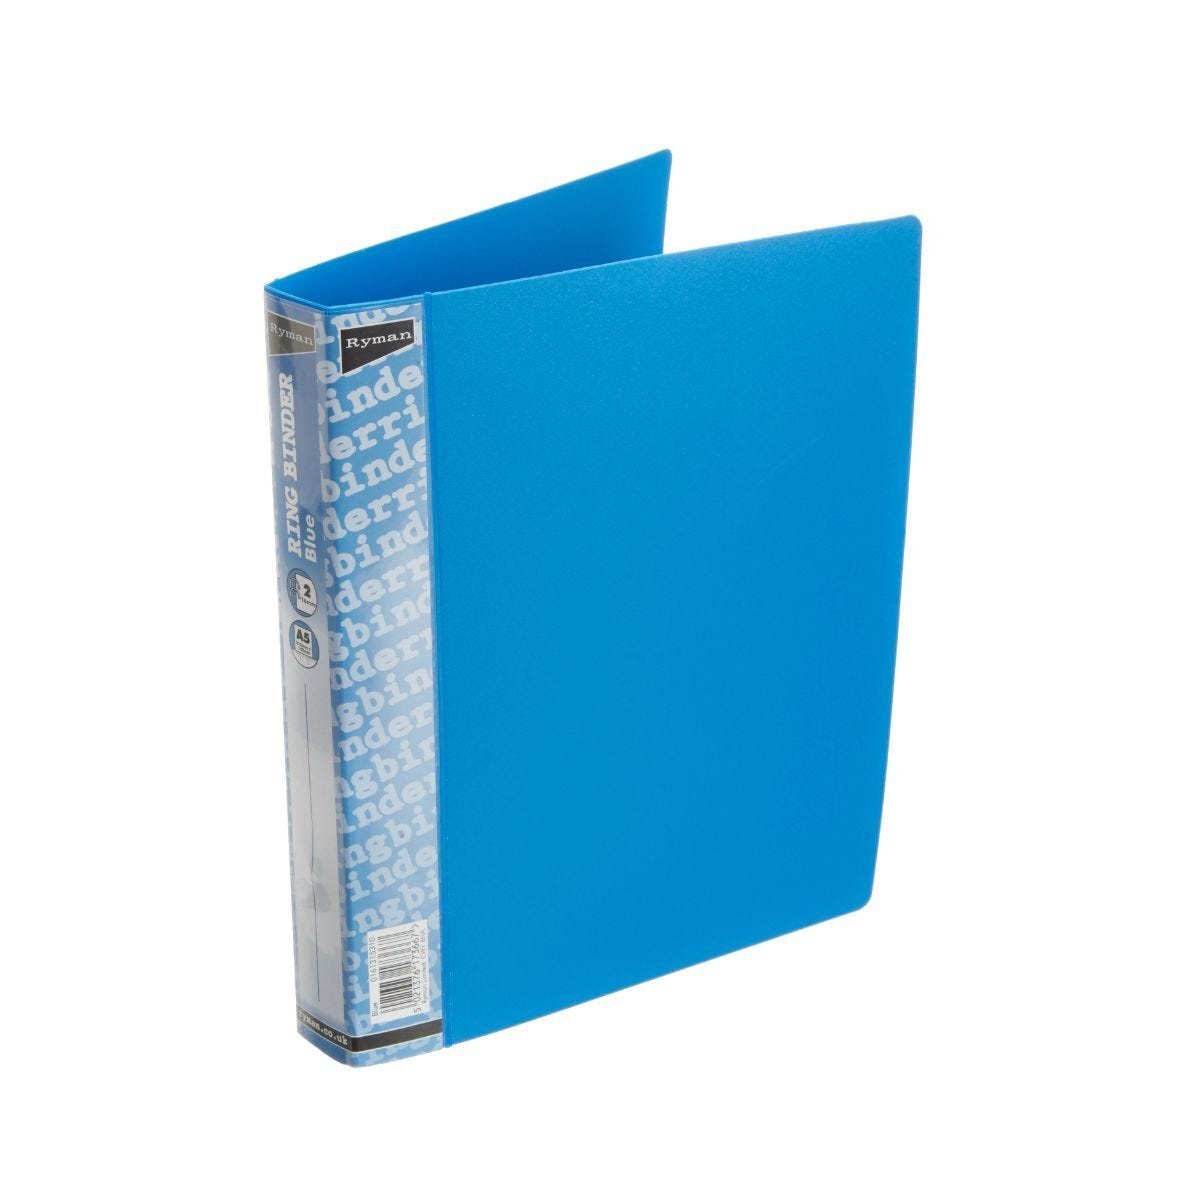 Ryman Ringbinder A5 16mm Blue